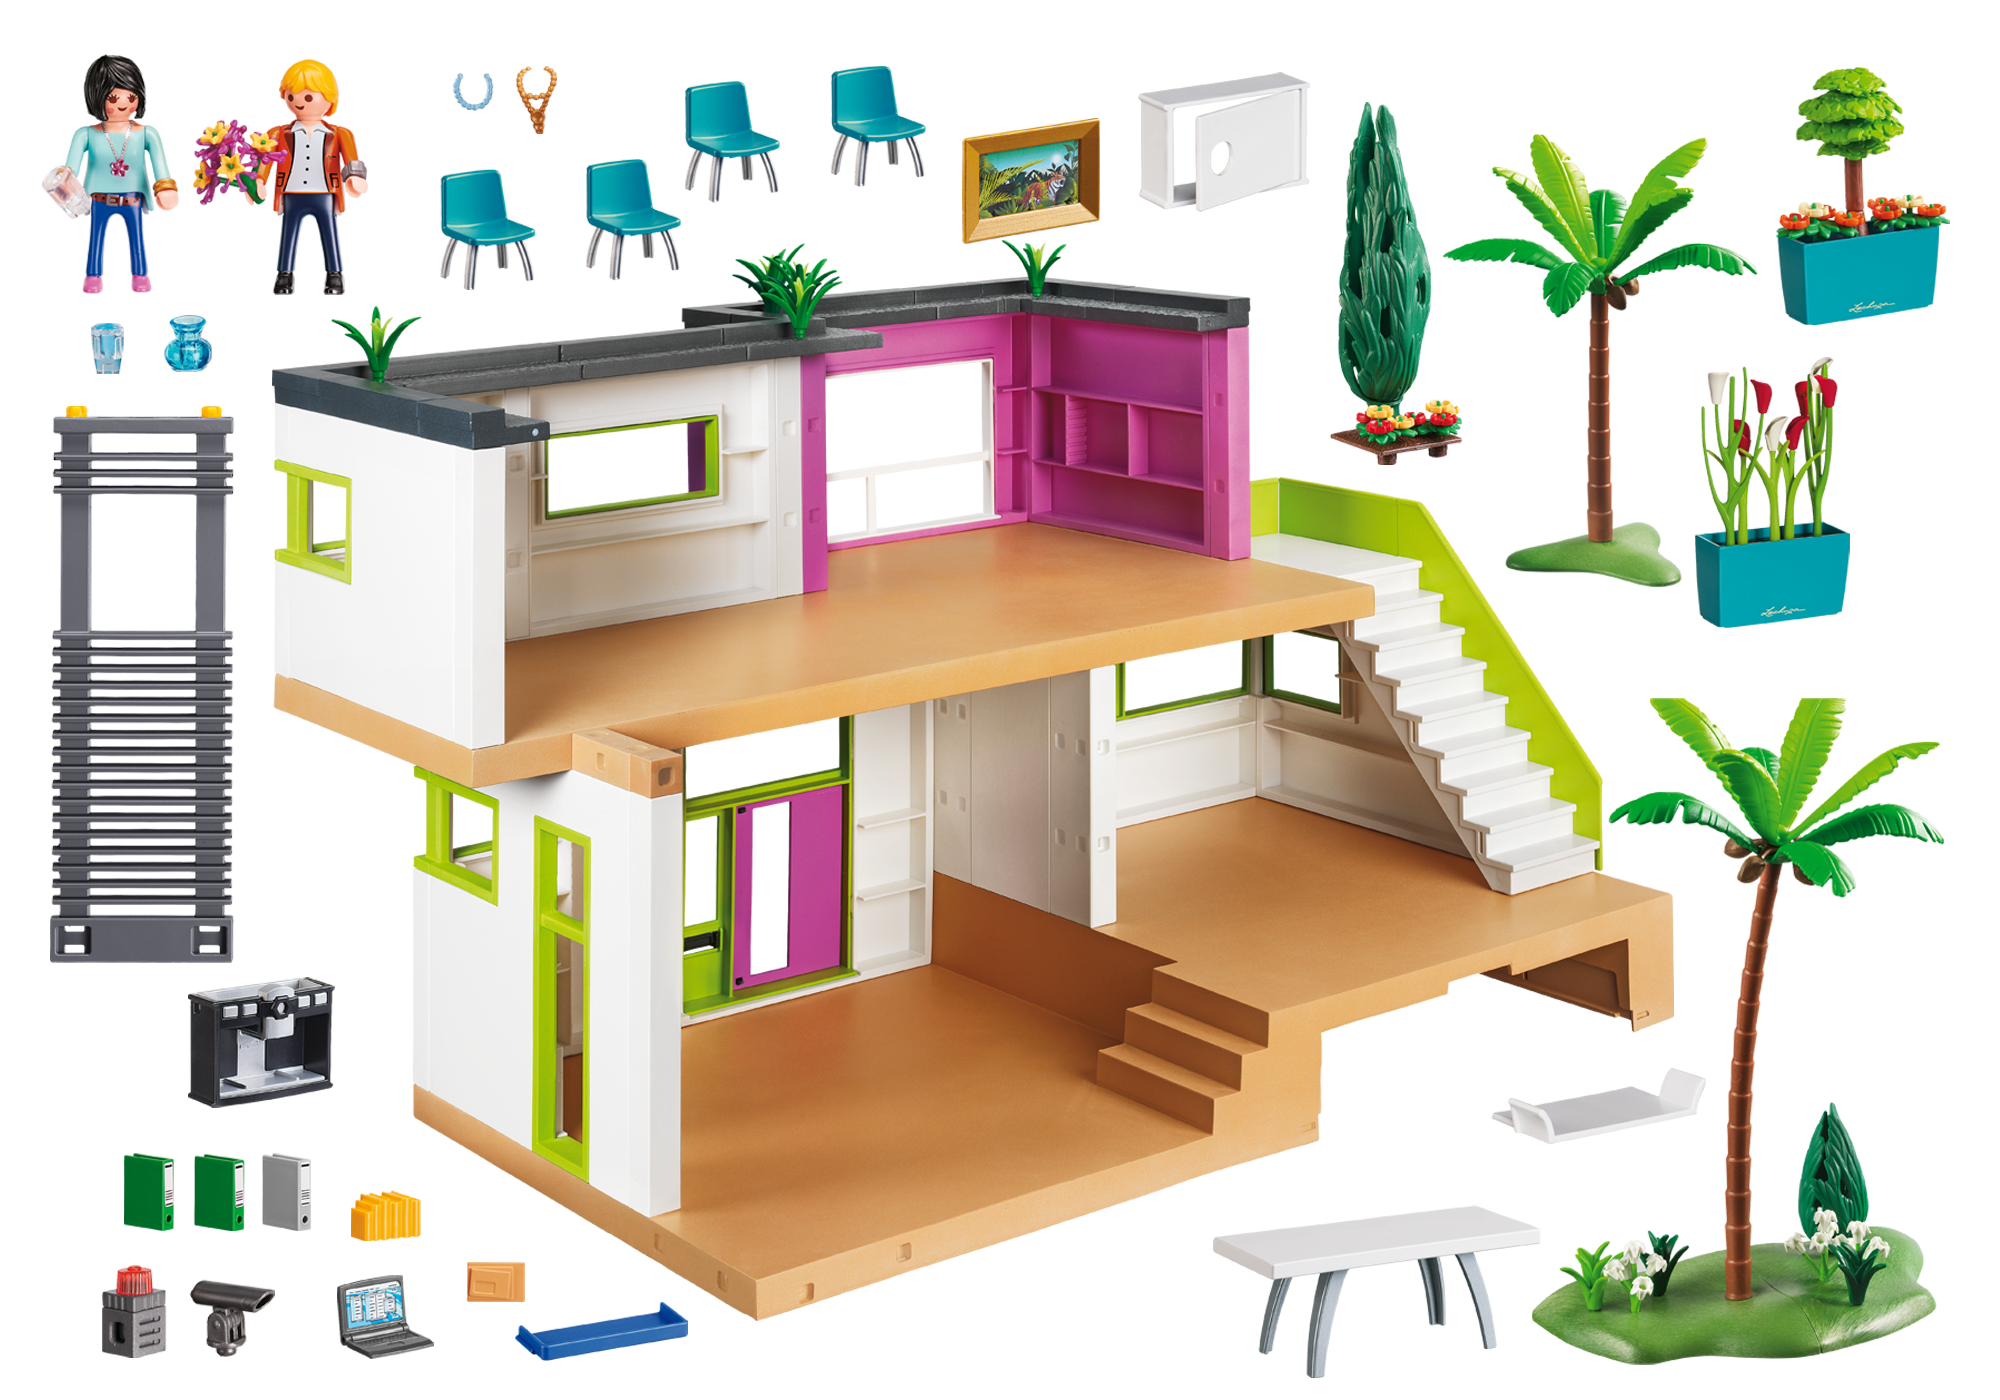 hd wallpapers extension maison moderne playmobil 5574 cmobilehdmobilei gq